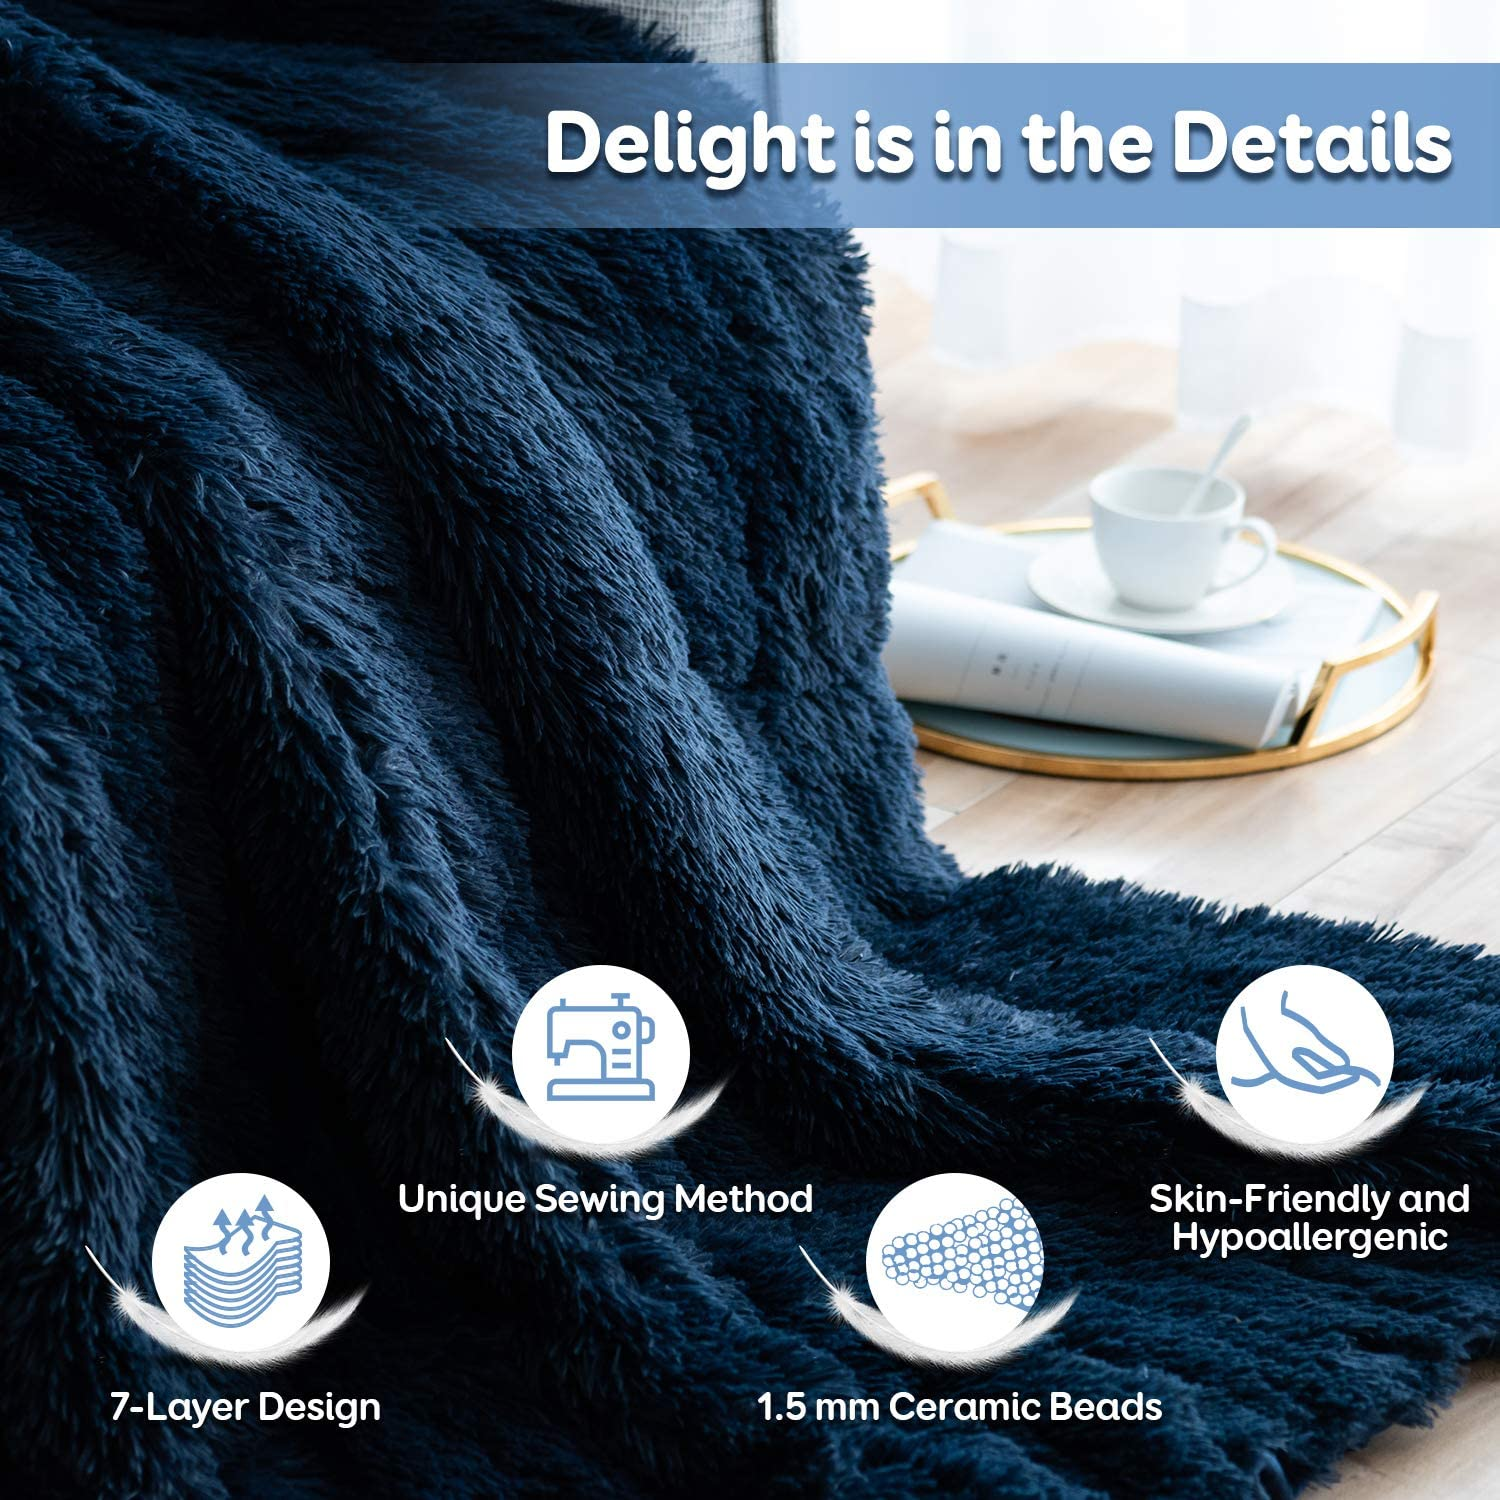 Cream 48x72 Snuggly Fuzzy Faux Fur Heavy Warm Elegant Cozy Plush Sherpa Microfiber Blanket Sivio Luxury Shaggy Longfur Weighted Blanket 15lbs for Couch Bed Chair Photo Props